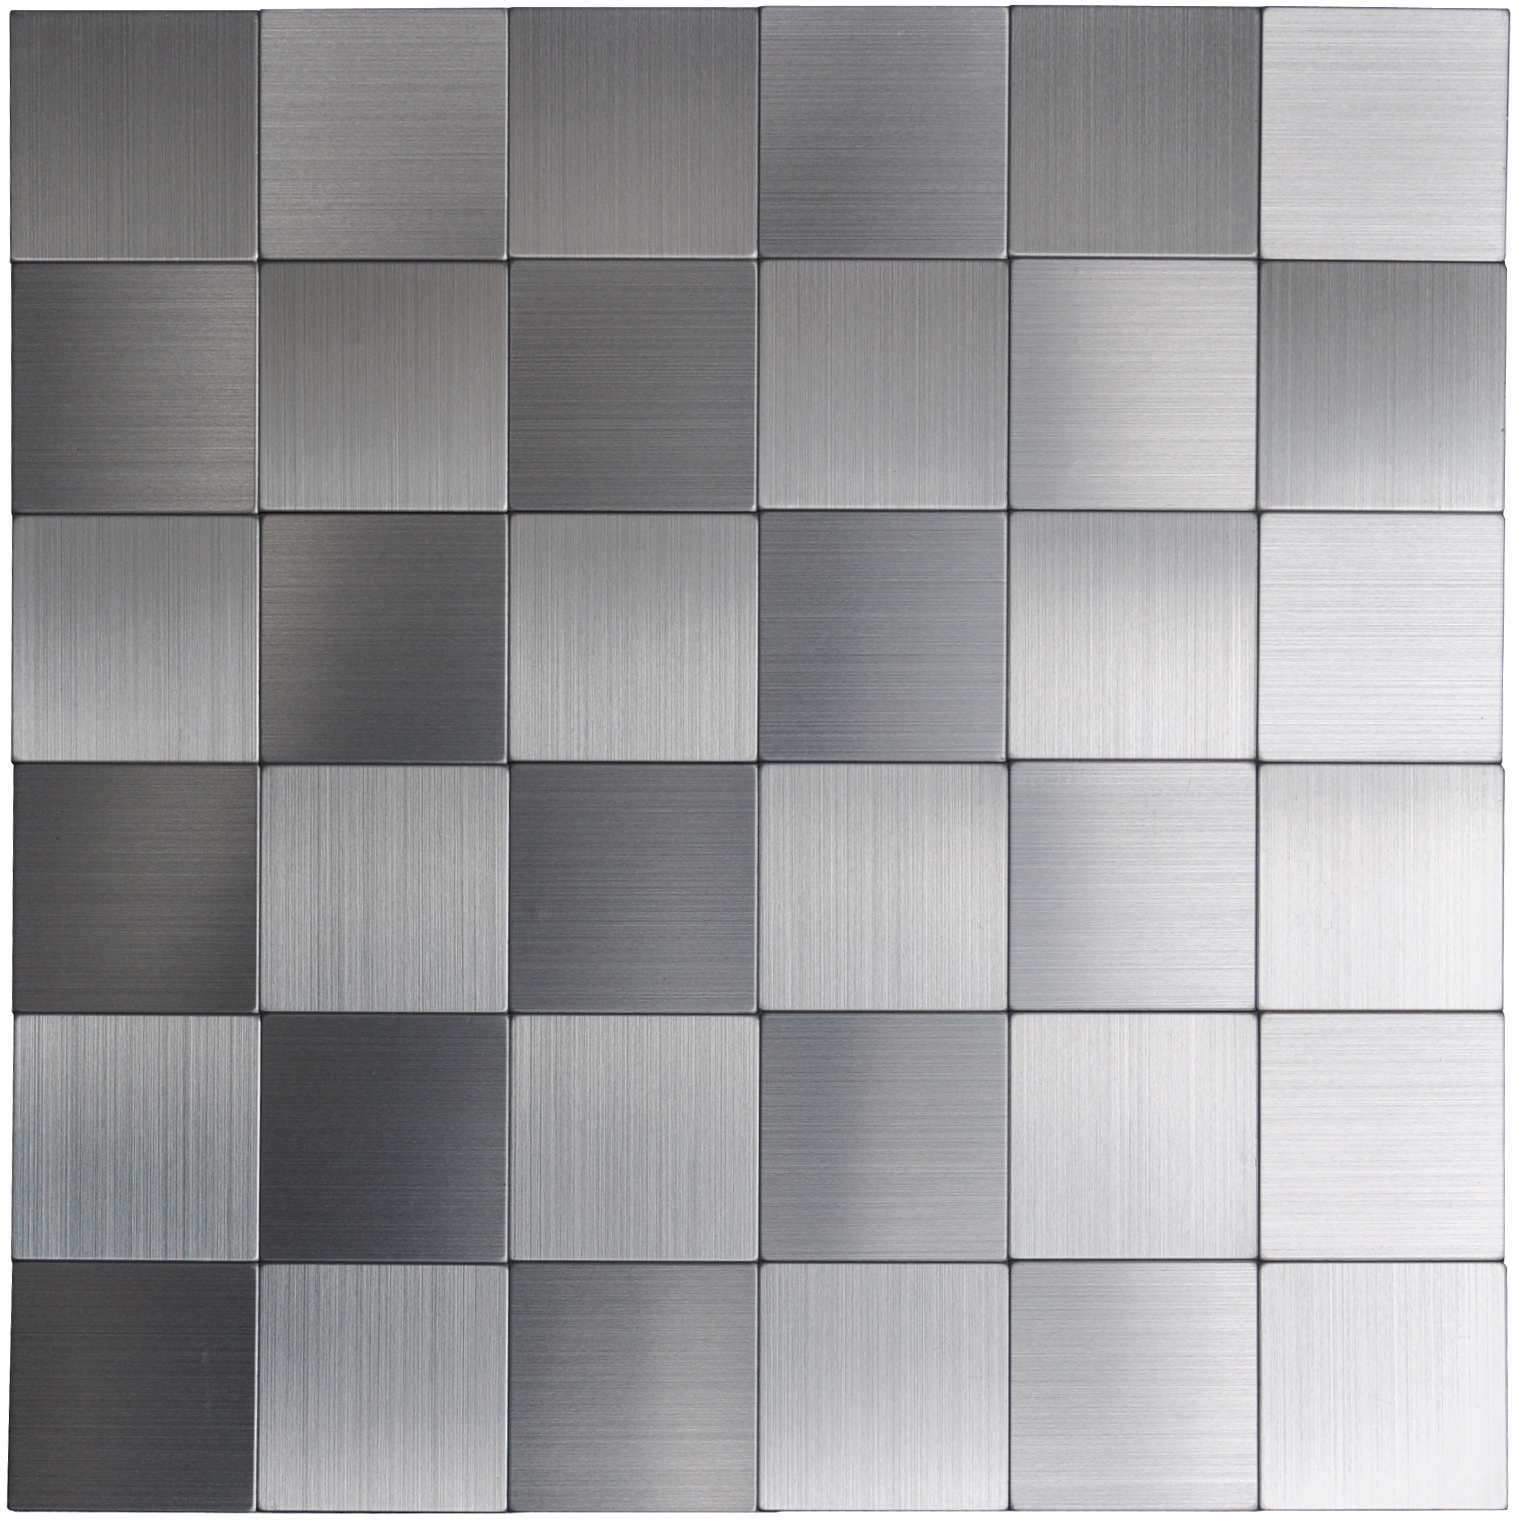 a16110 self adhesive metal tiles 10 pcs stainless peel n stick backsplashes tiles 12x12in - Metal Tile Home 2016